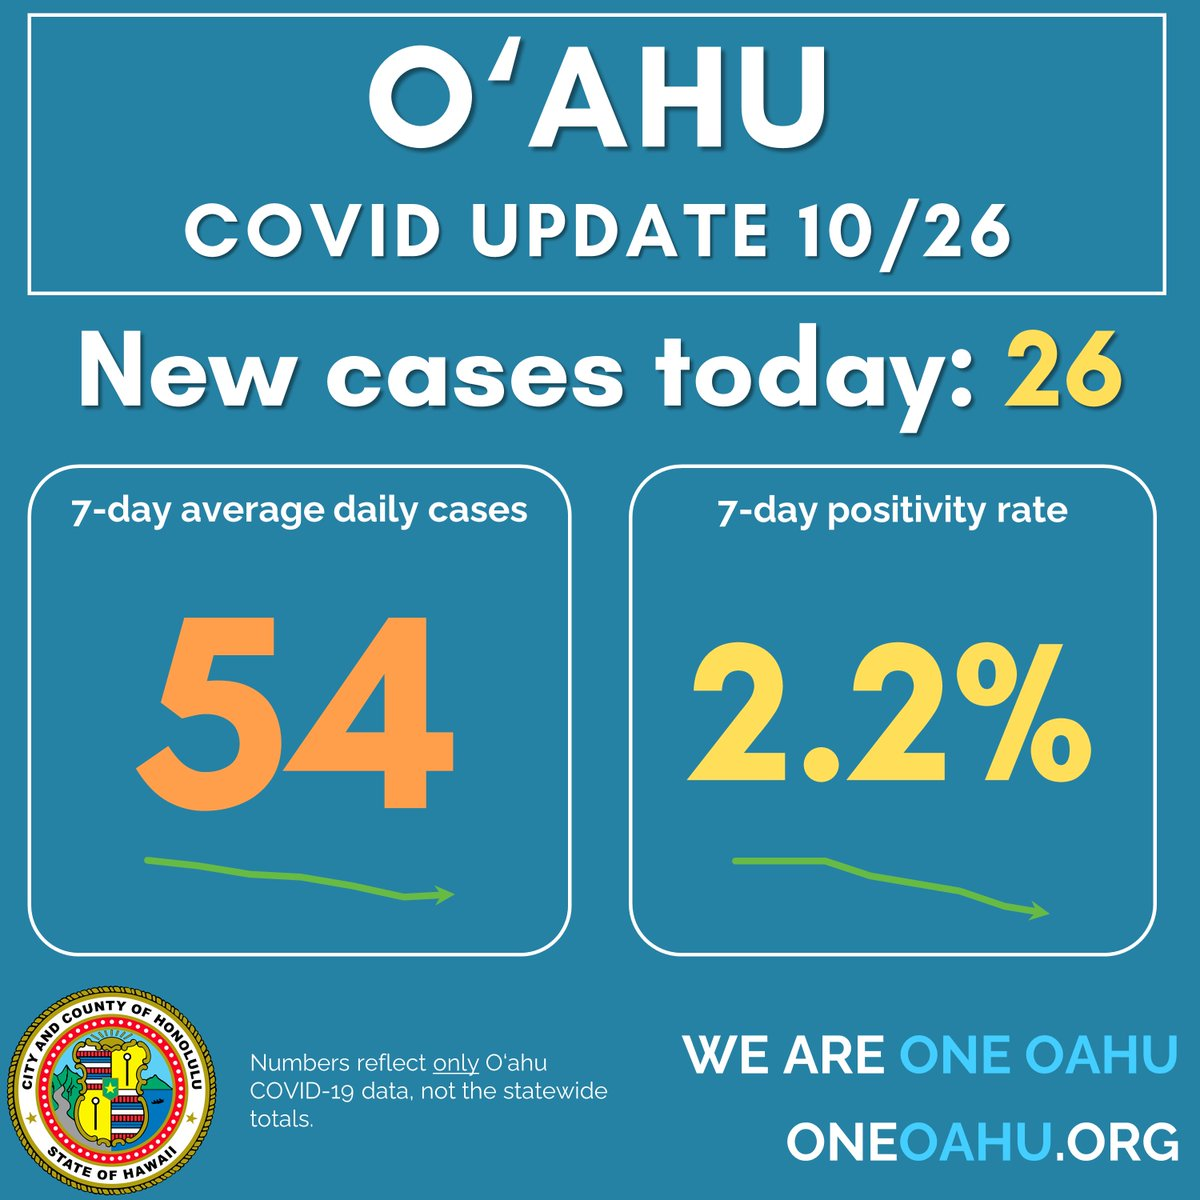 Oʻahu COVID-19 numbers: 26 cases on Oʻahu today, bringing our 7-day averages to 54 cases and a 2.2% positivity rate. And thankfully, we've seen 0 deaths on Oʻahu today related to this virus. https://t.co/Dfd70BkvqU